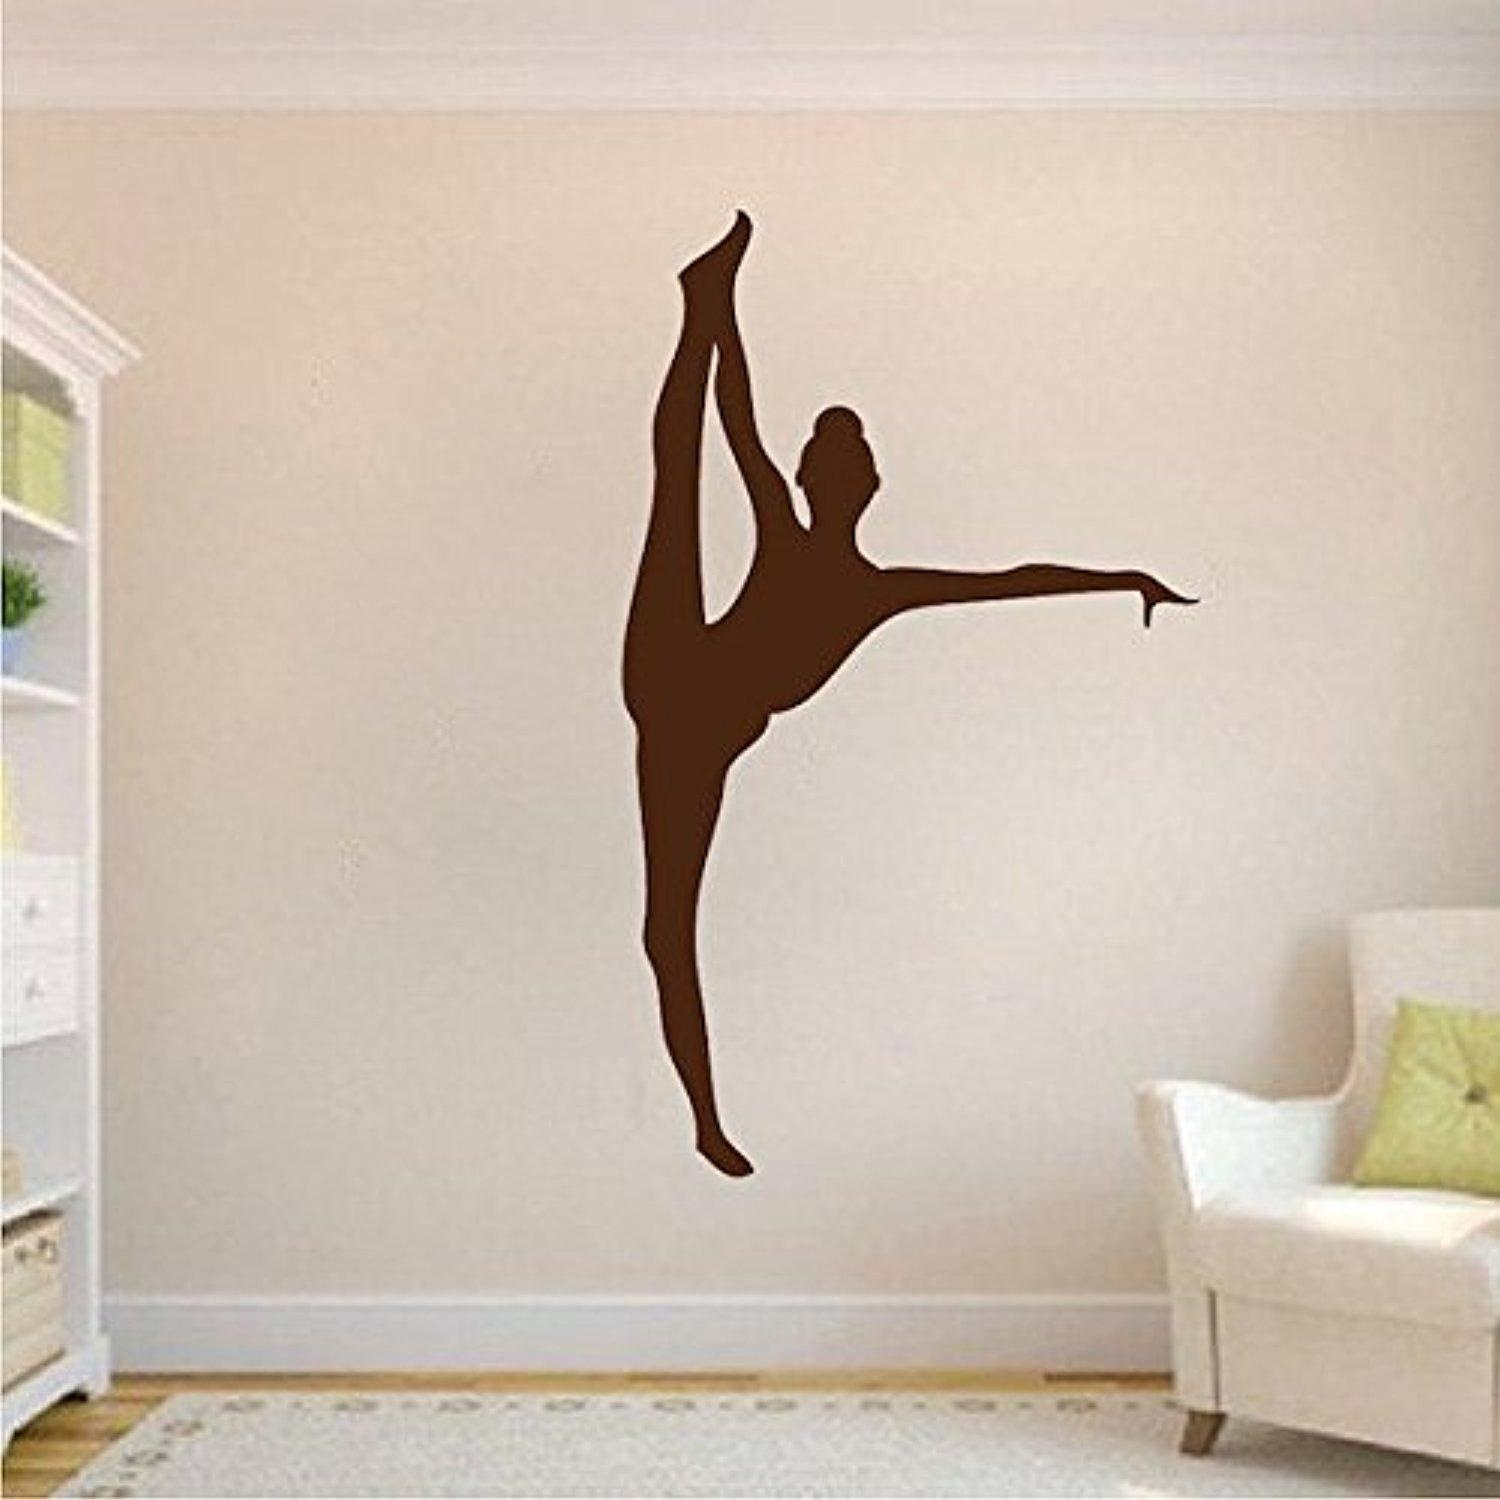 Gymnastics wall stickers uk choice image home wall decoration ideas ballerina wall stickers images home wall decoration ideas ballerina wall mural gallery home wall decoration ideas amipublicfo Gallery